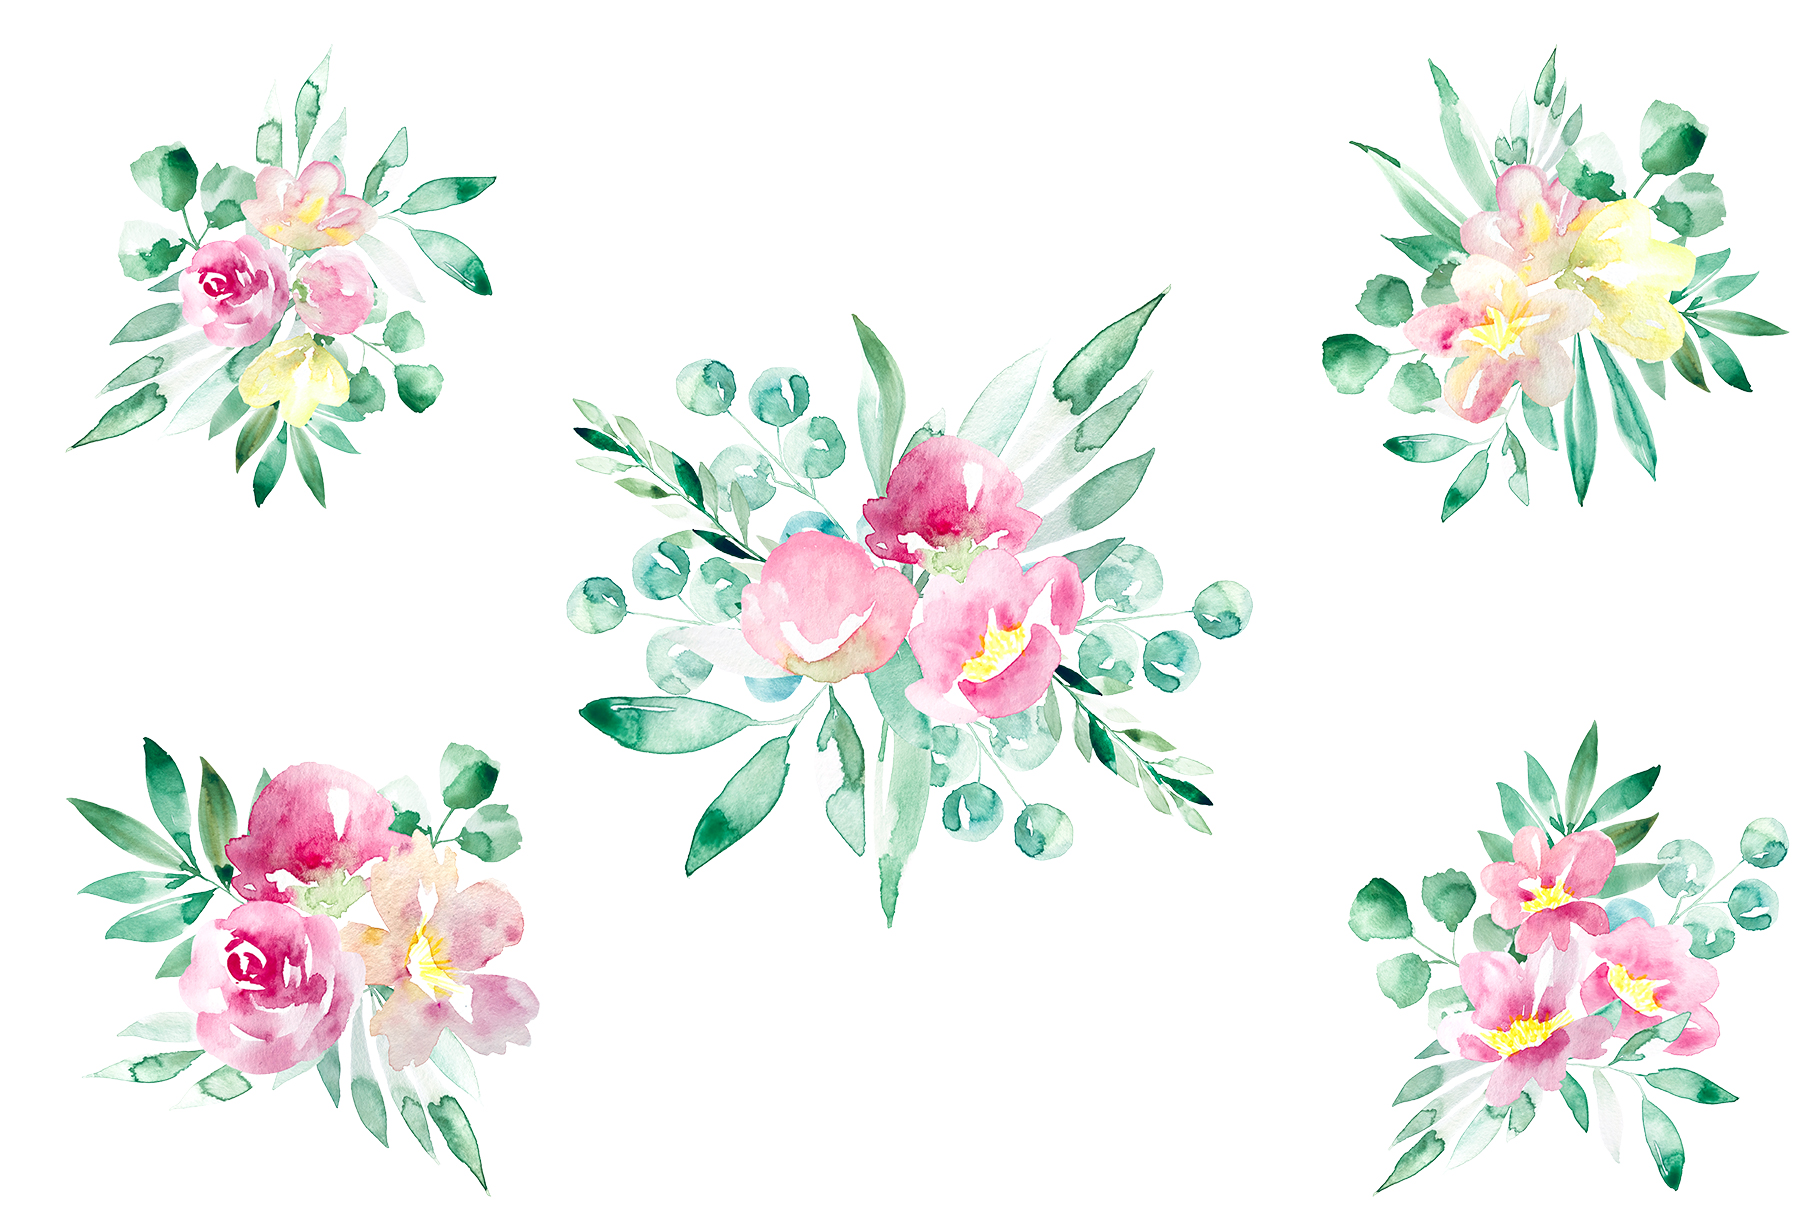 Pastel watercolor spring floral illustrations example image 5